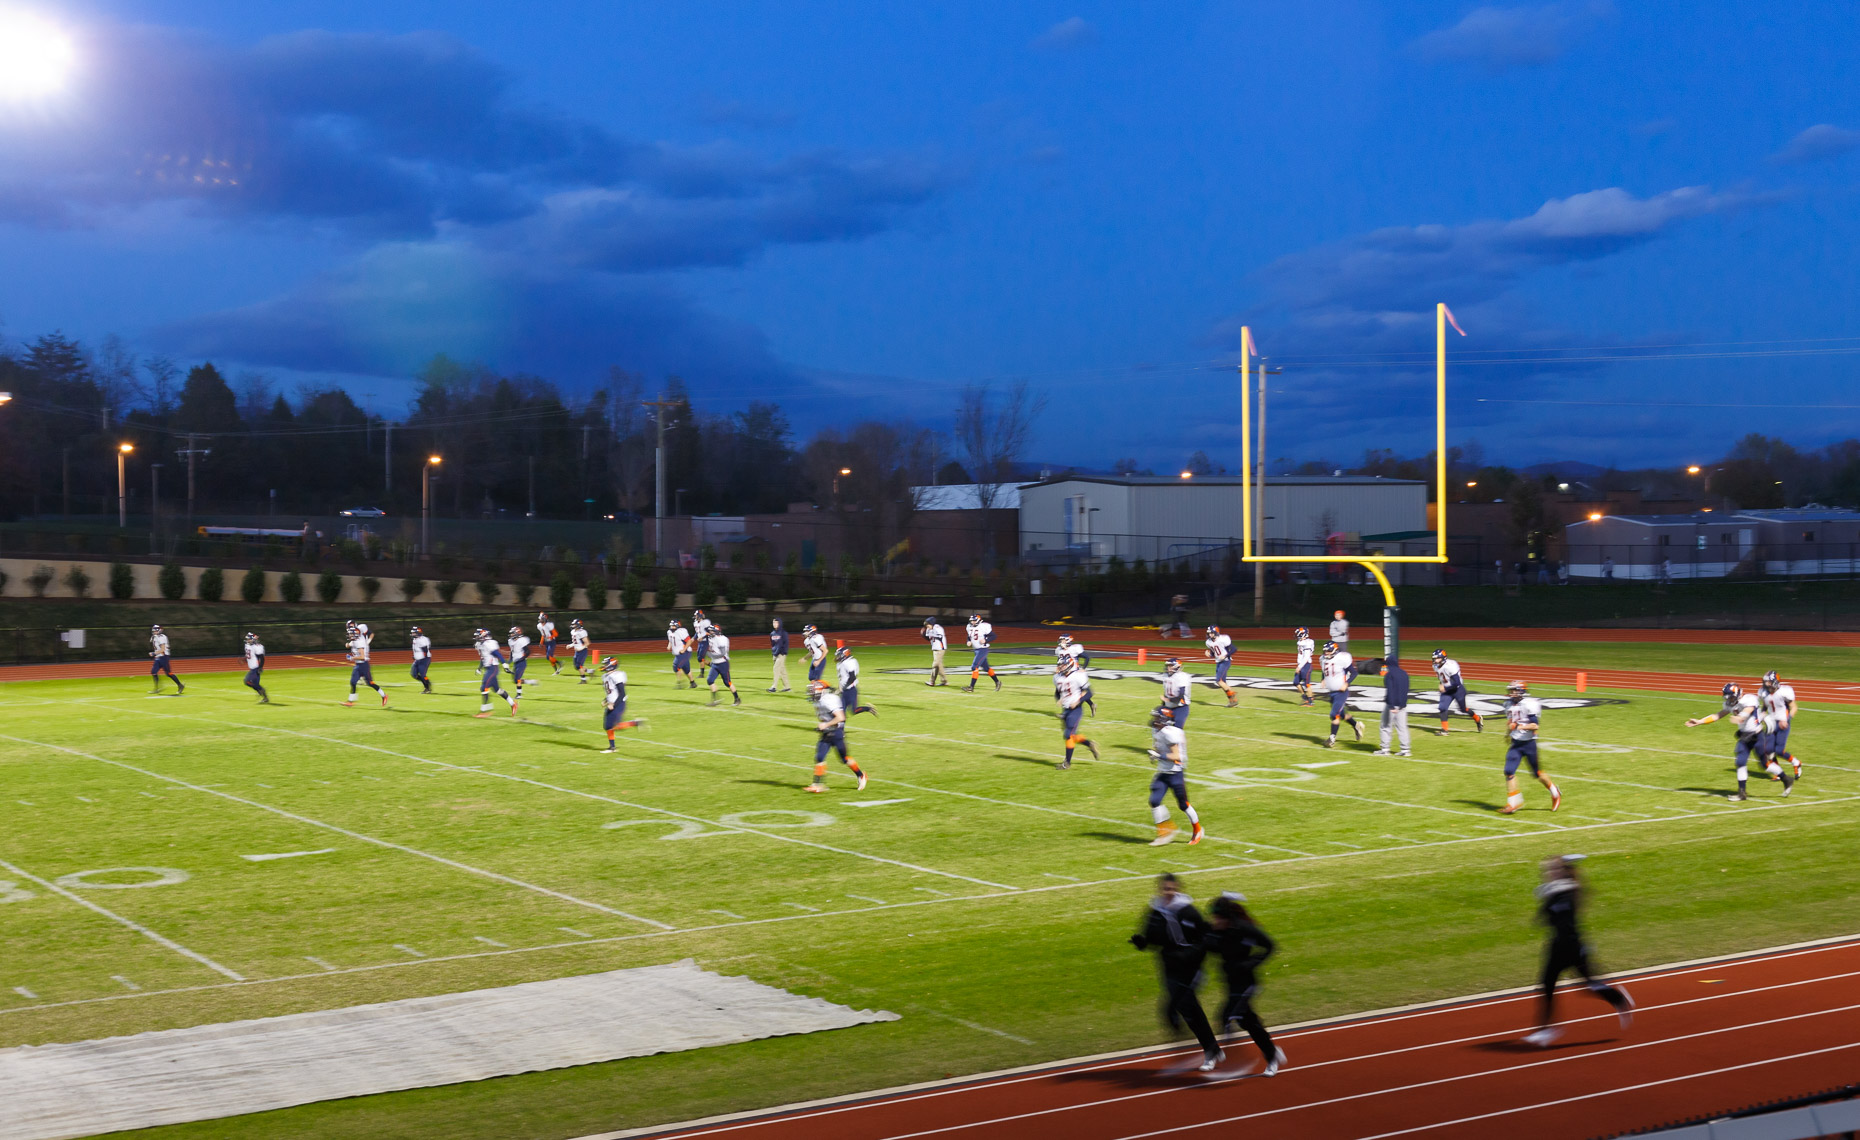 Virginia Hamrick Photography - Athletic Field - Academia